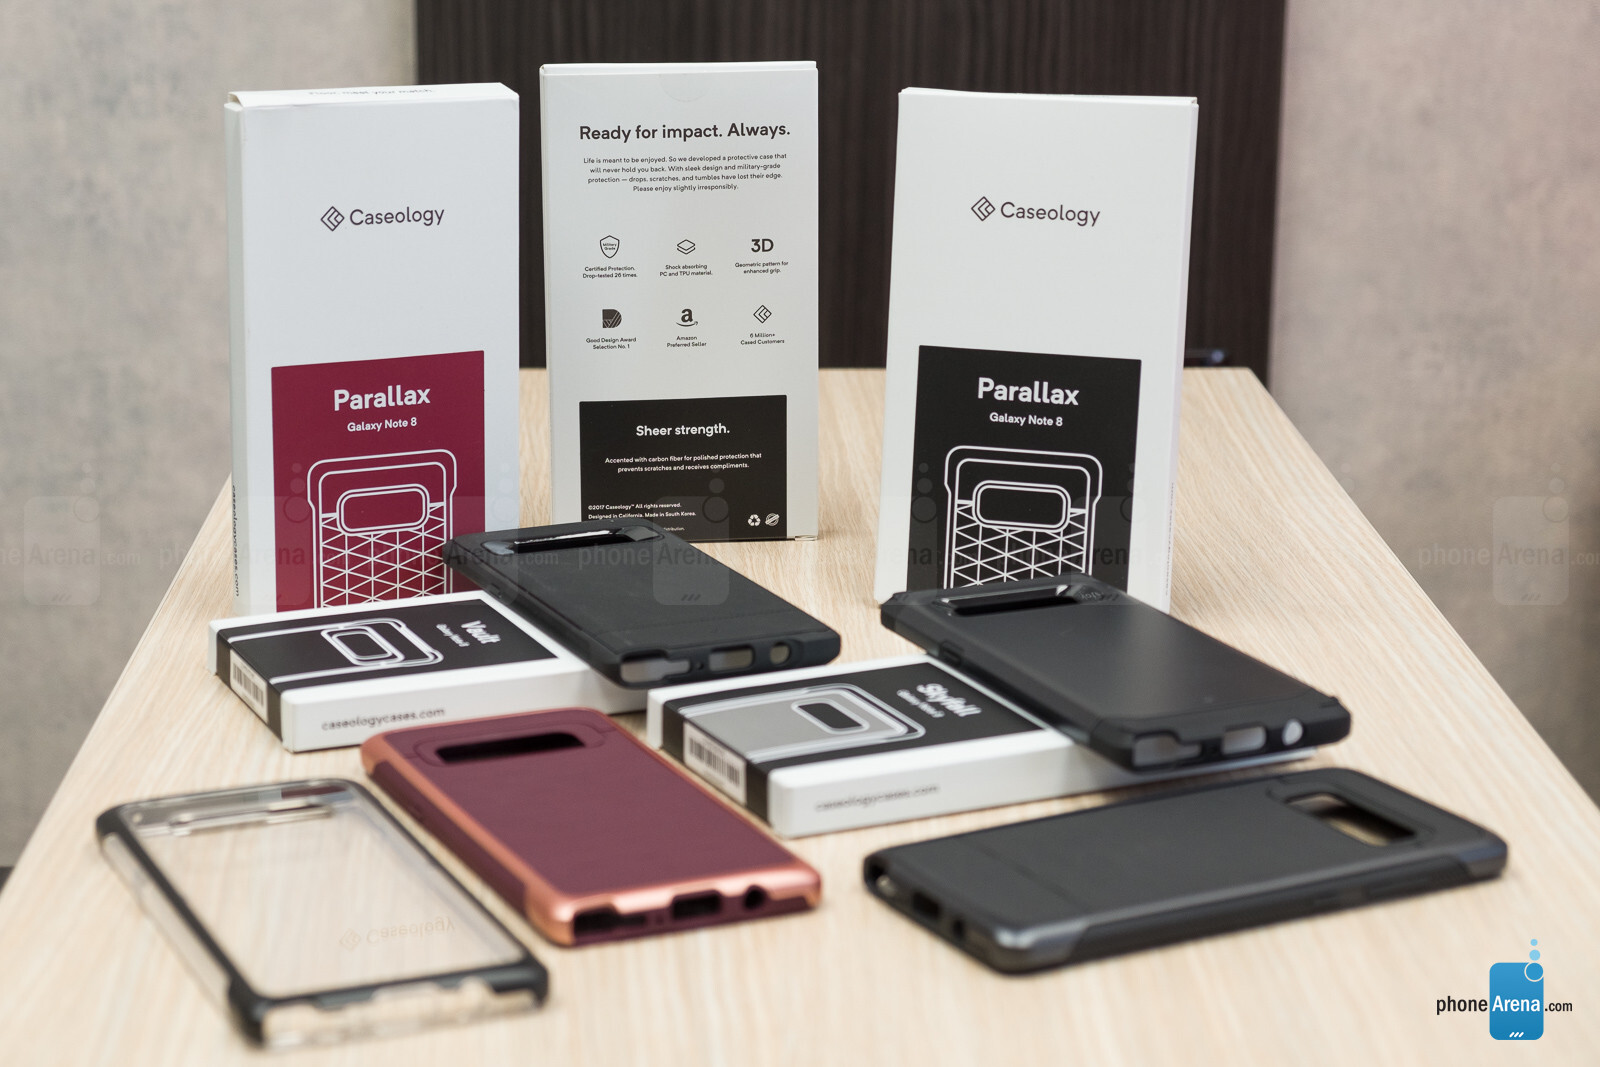 All Caseology Note 8 cases